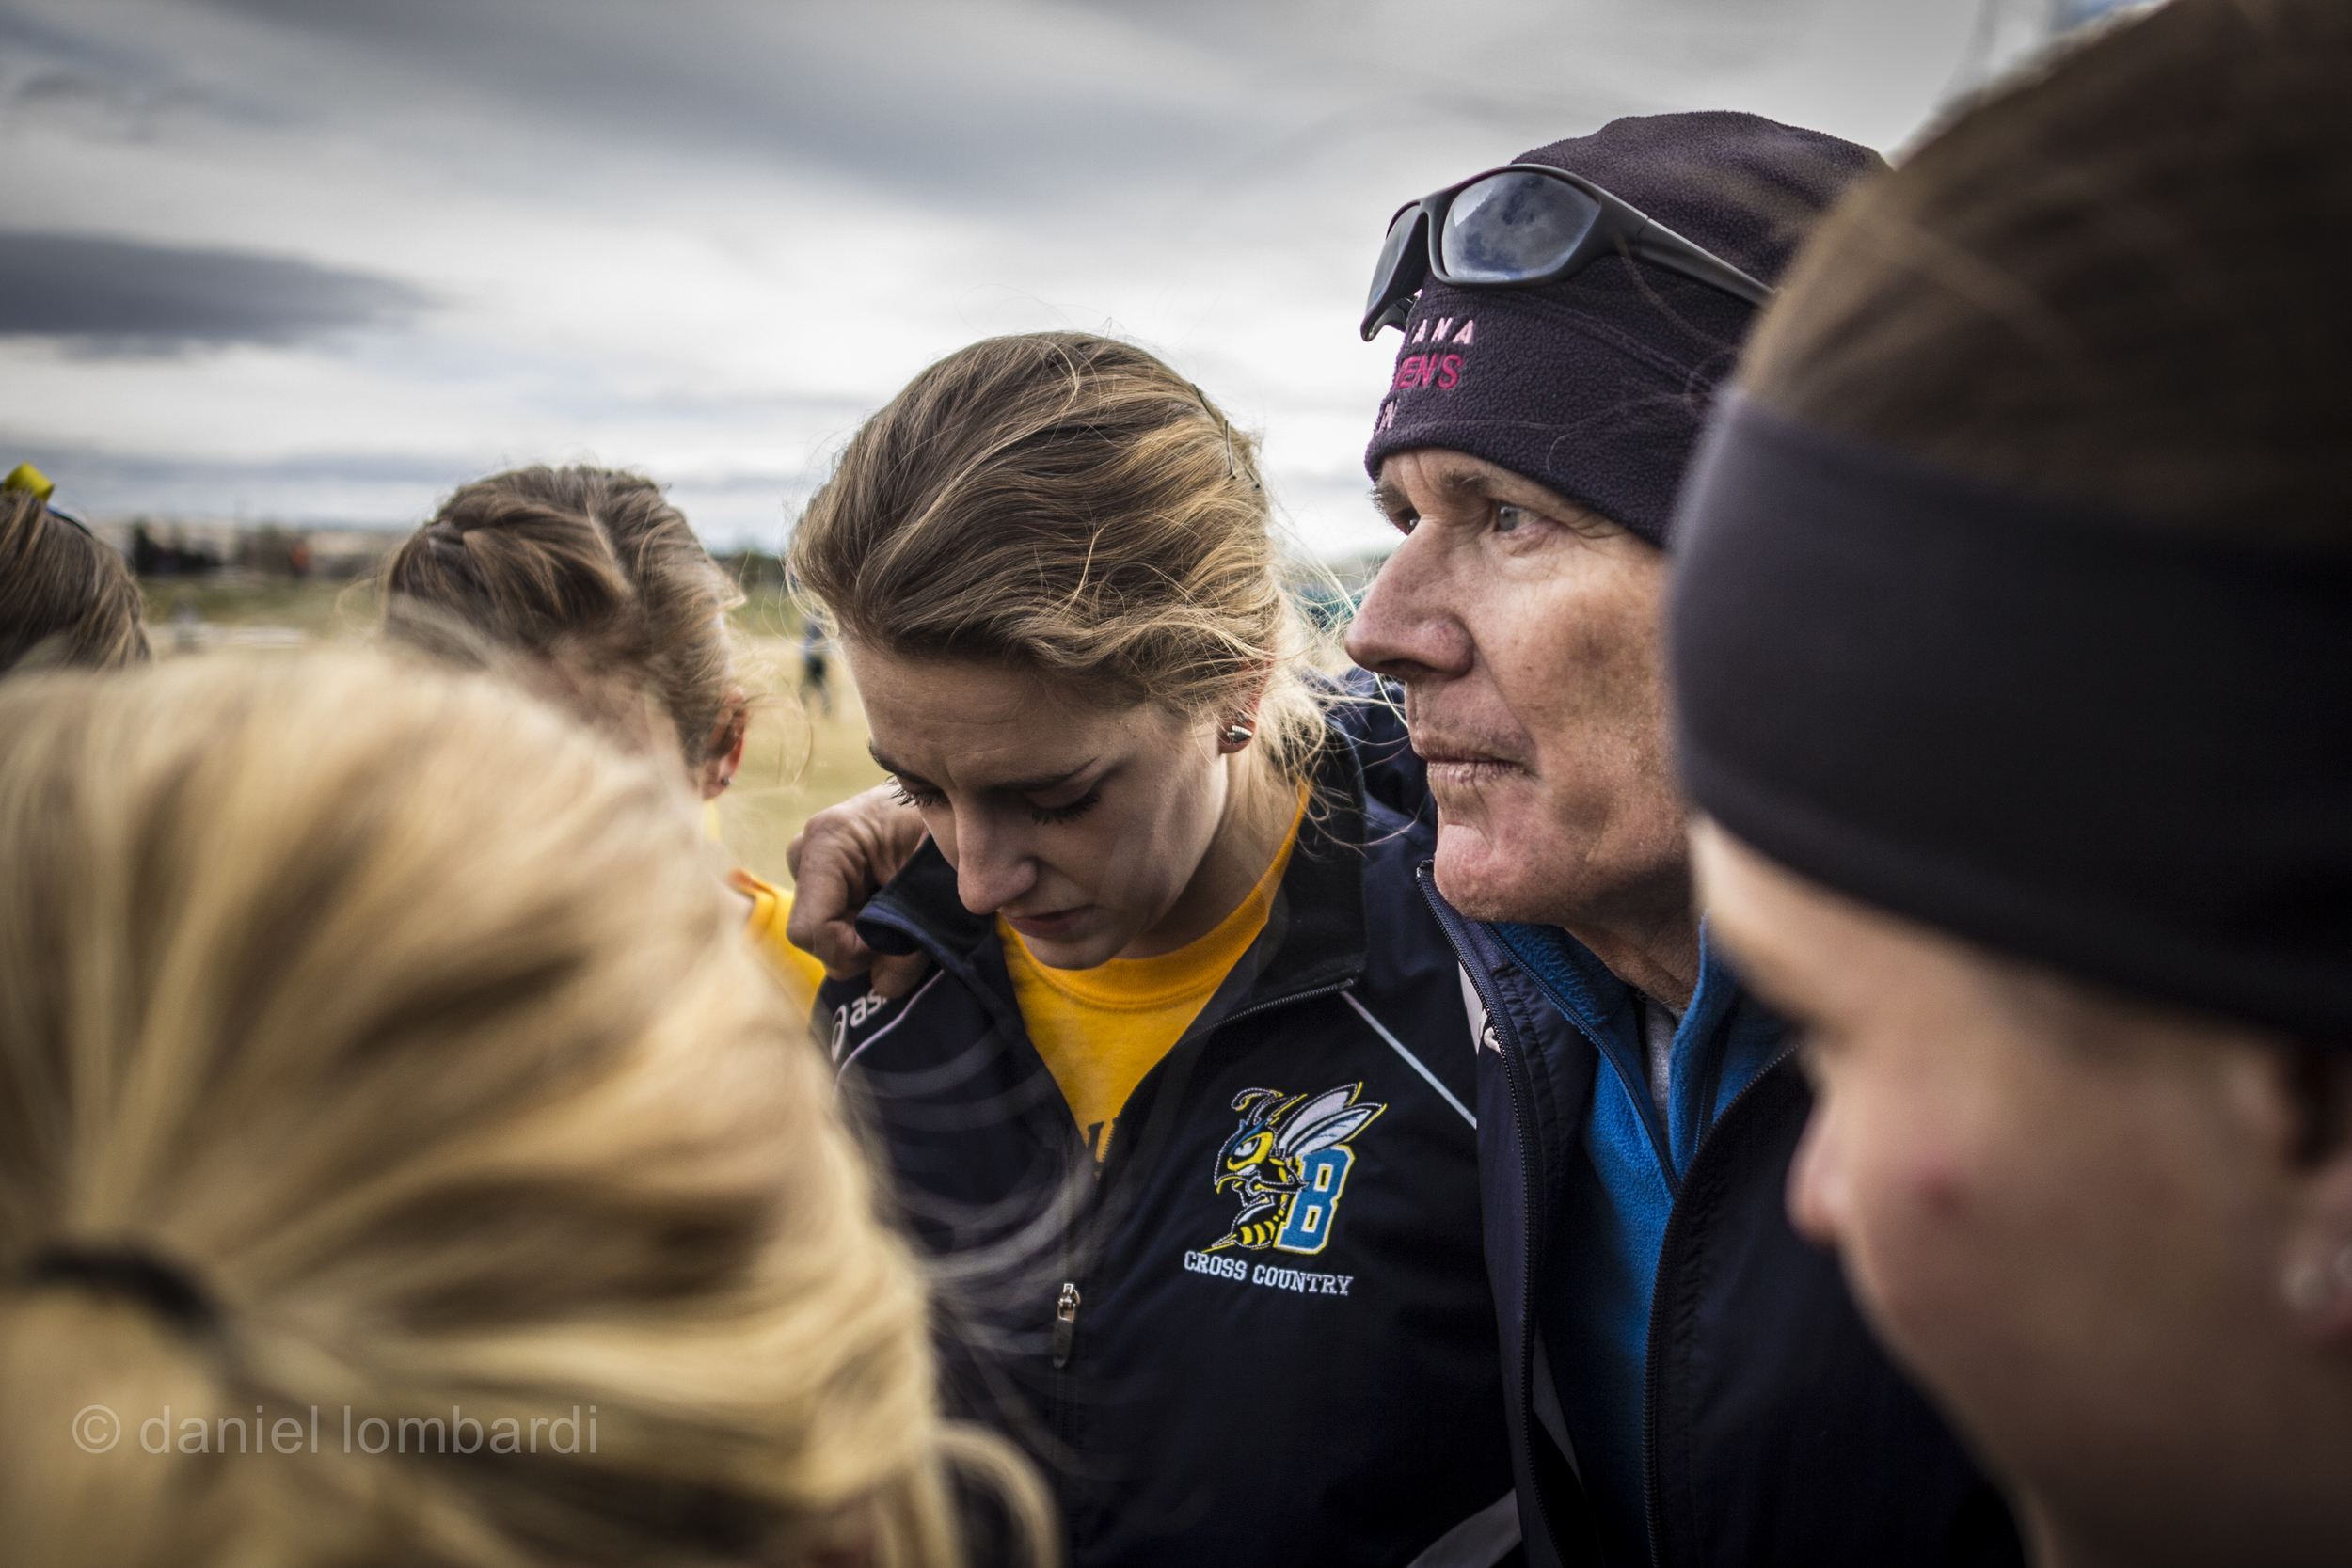 Dave Coppock shares motivational words with his athletes in the huddle before the race.